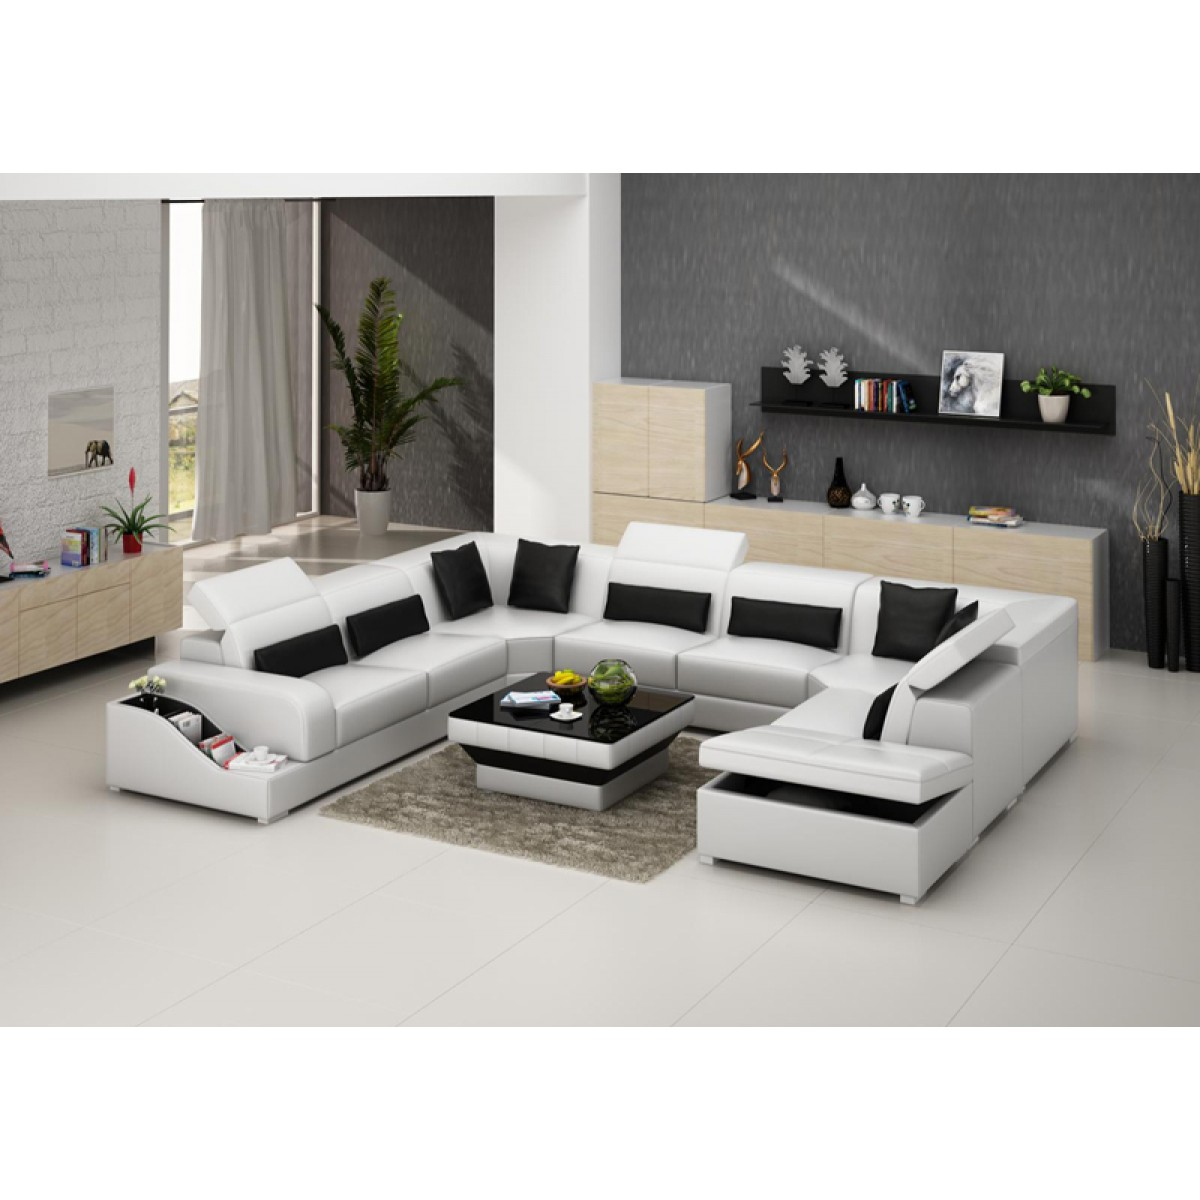 Canape d angle 6 8 places royal sofa id e de canap et for Canape d angle 6 8 places